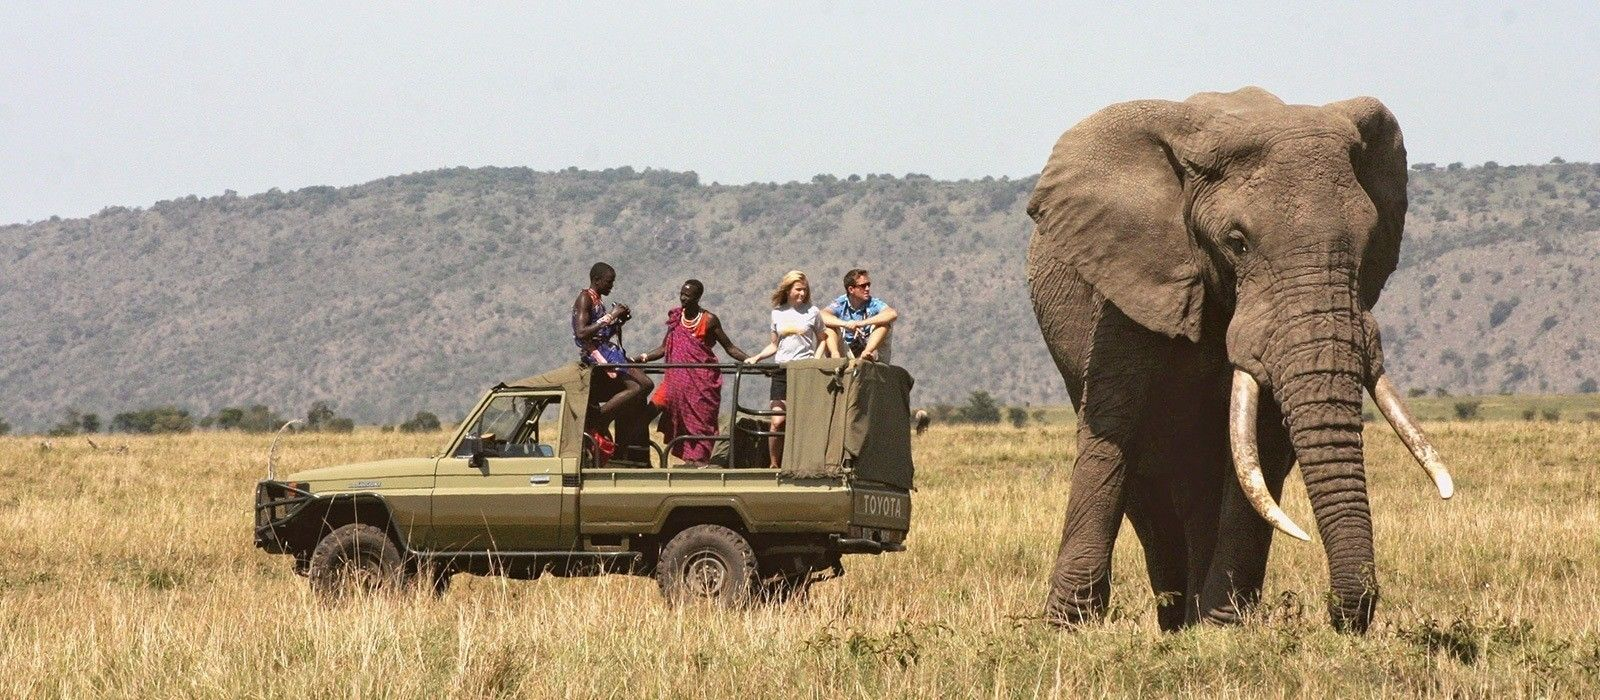 Safari Highlights of Kenya Tour Trip 4